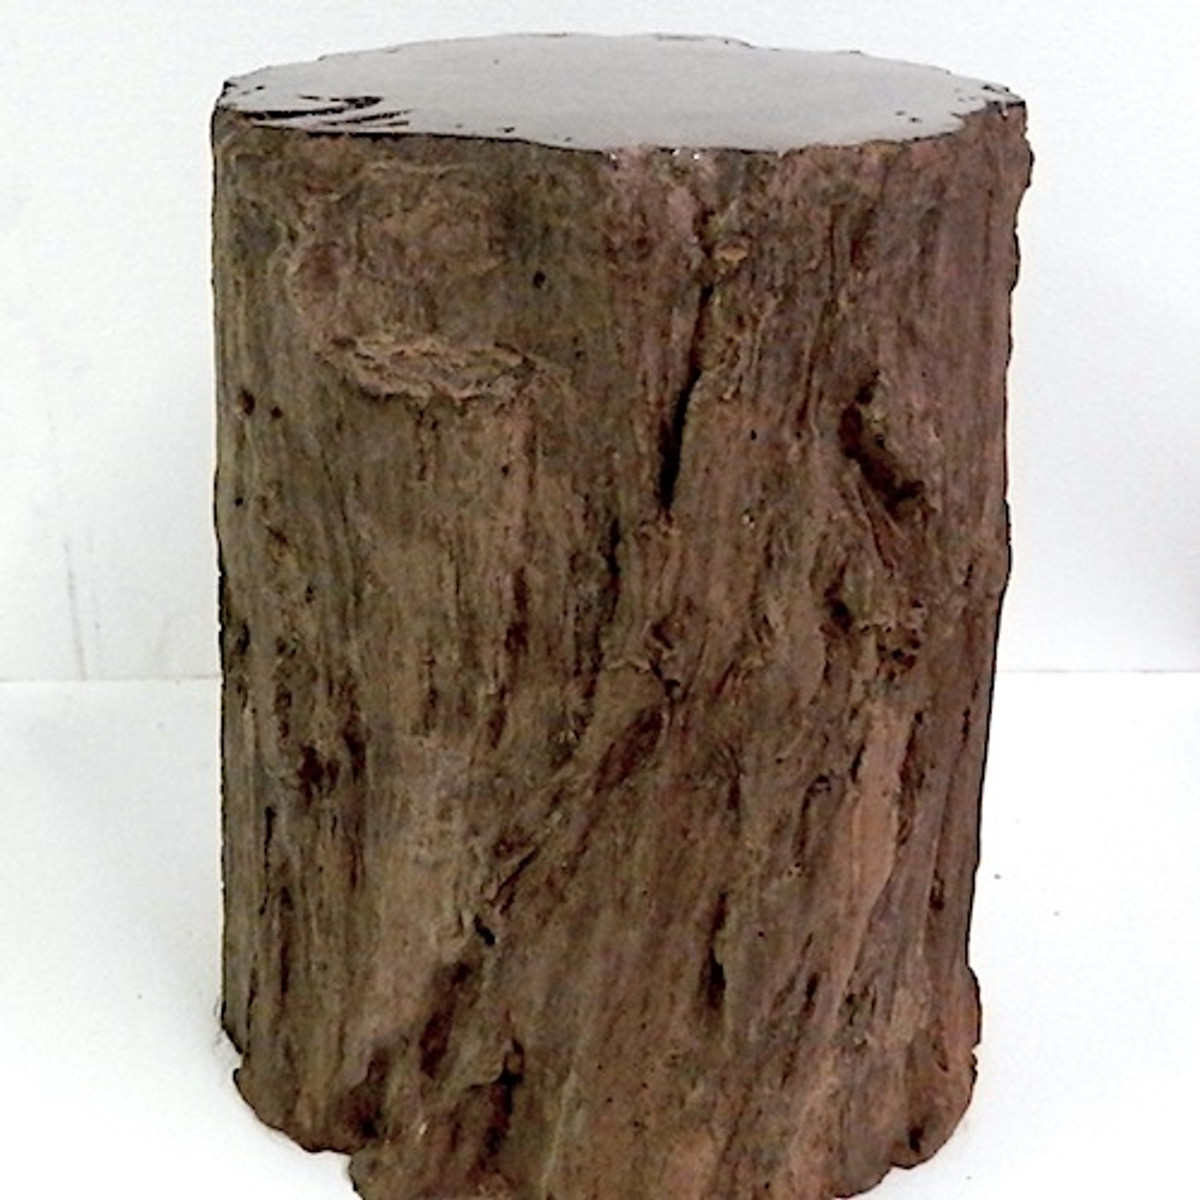 fire pit seat, concrete seat, concrete bench, outdoor bench, outdoor furniture, fossilized wood, tree stump, concrete tree stump, wood sculpture